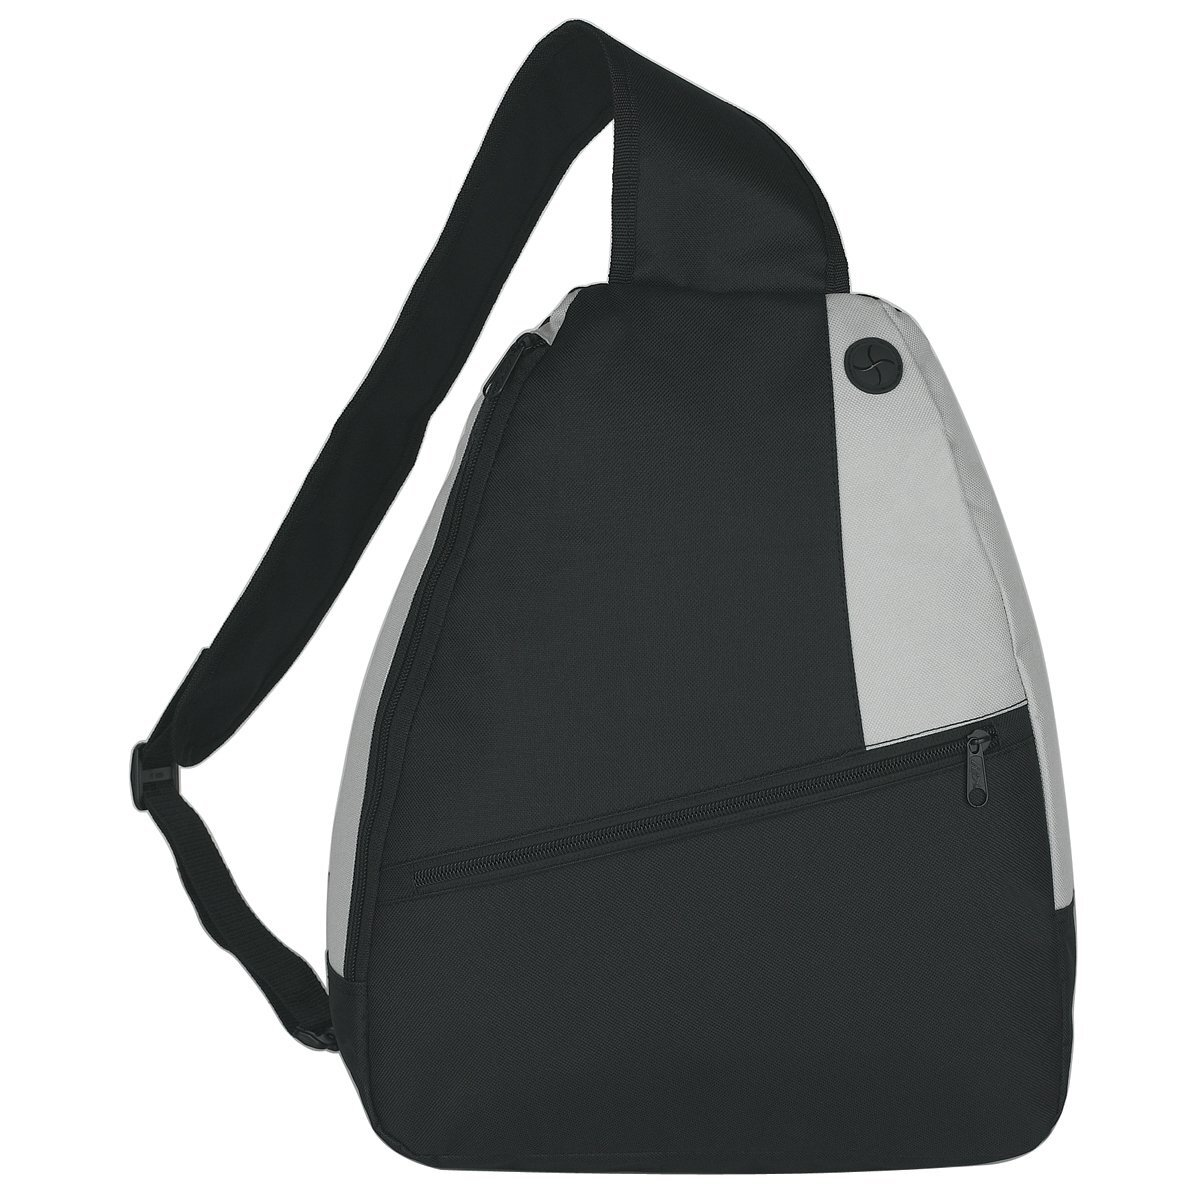 Adjustable 600D Shoulder Sling Backpack